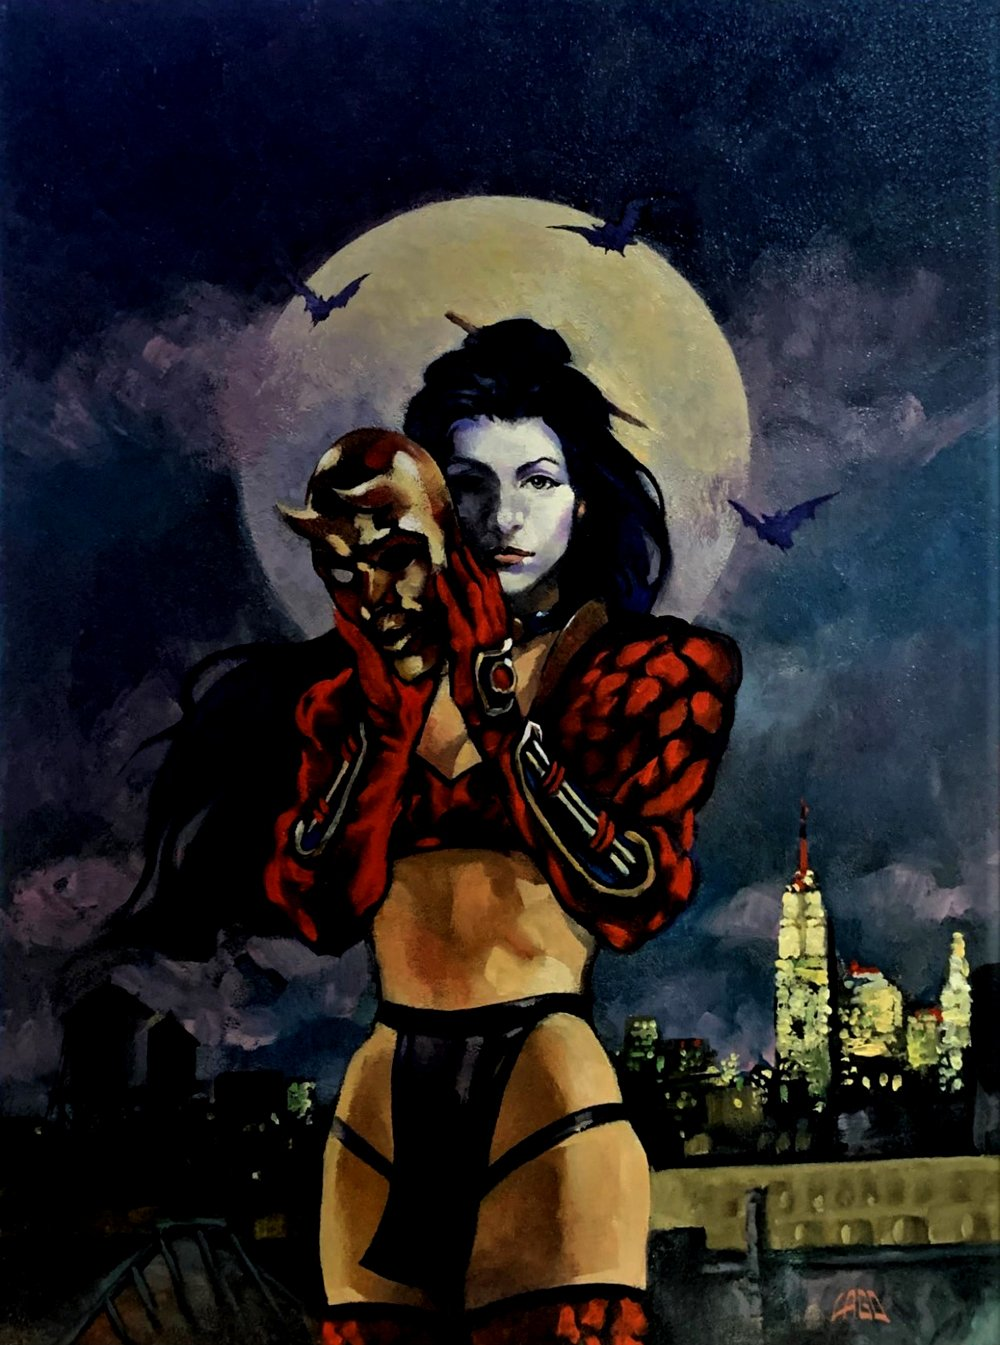 Shi: Masquerade #1 Cover Painting (Unpublished - 1998)